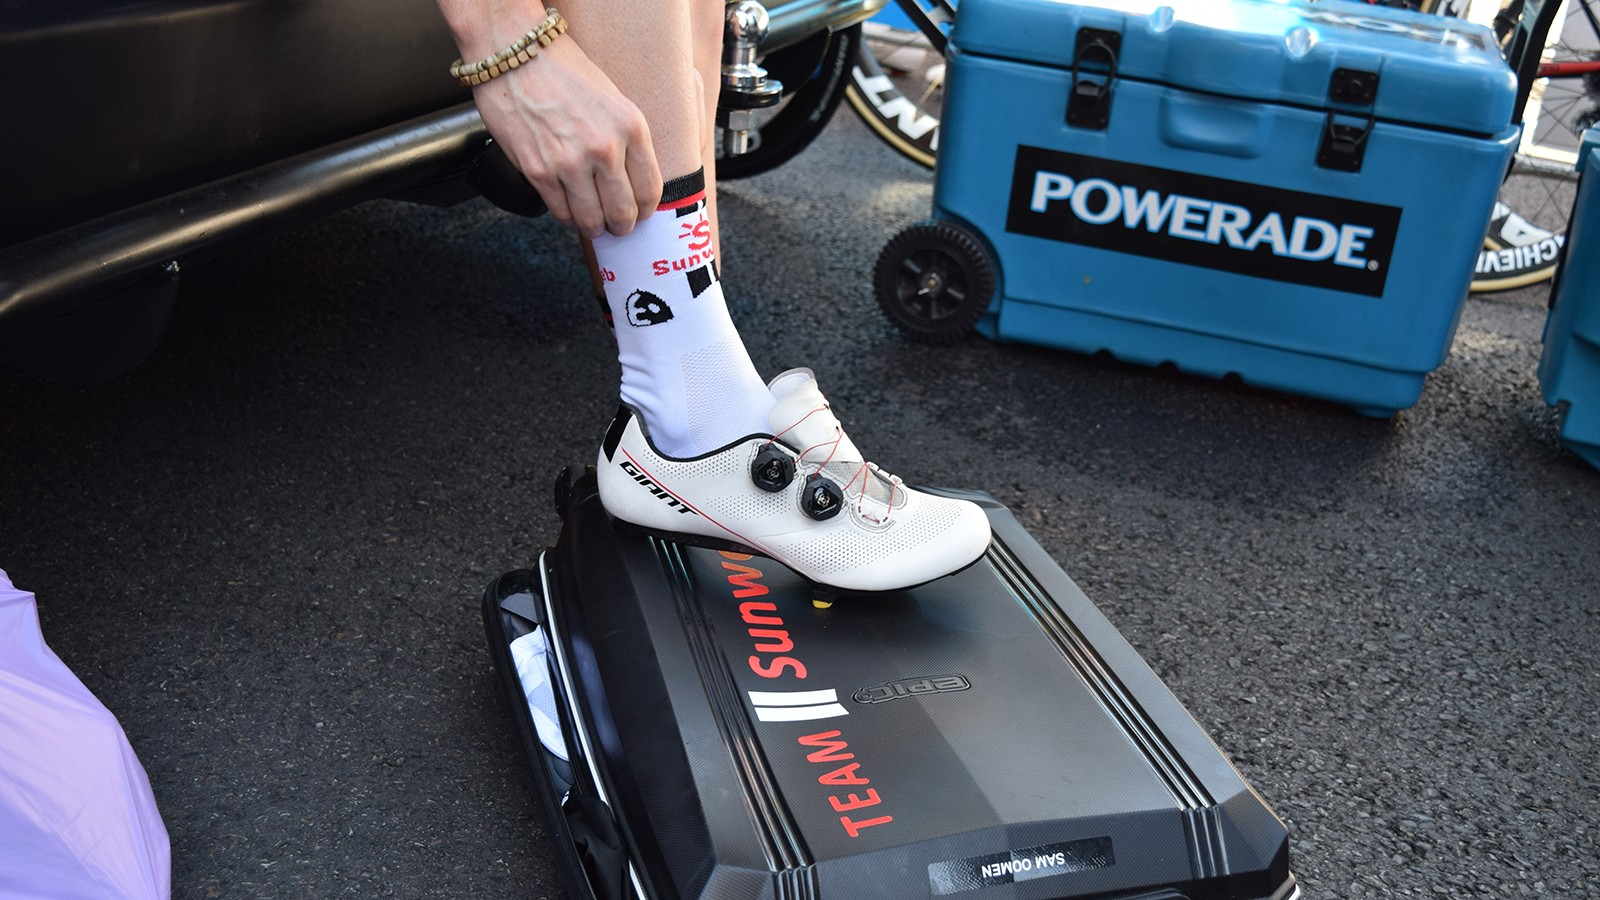 Giant's new shoes were worn by each Team Sunweb rider during the Tour Down Under